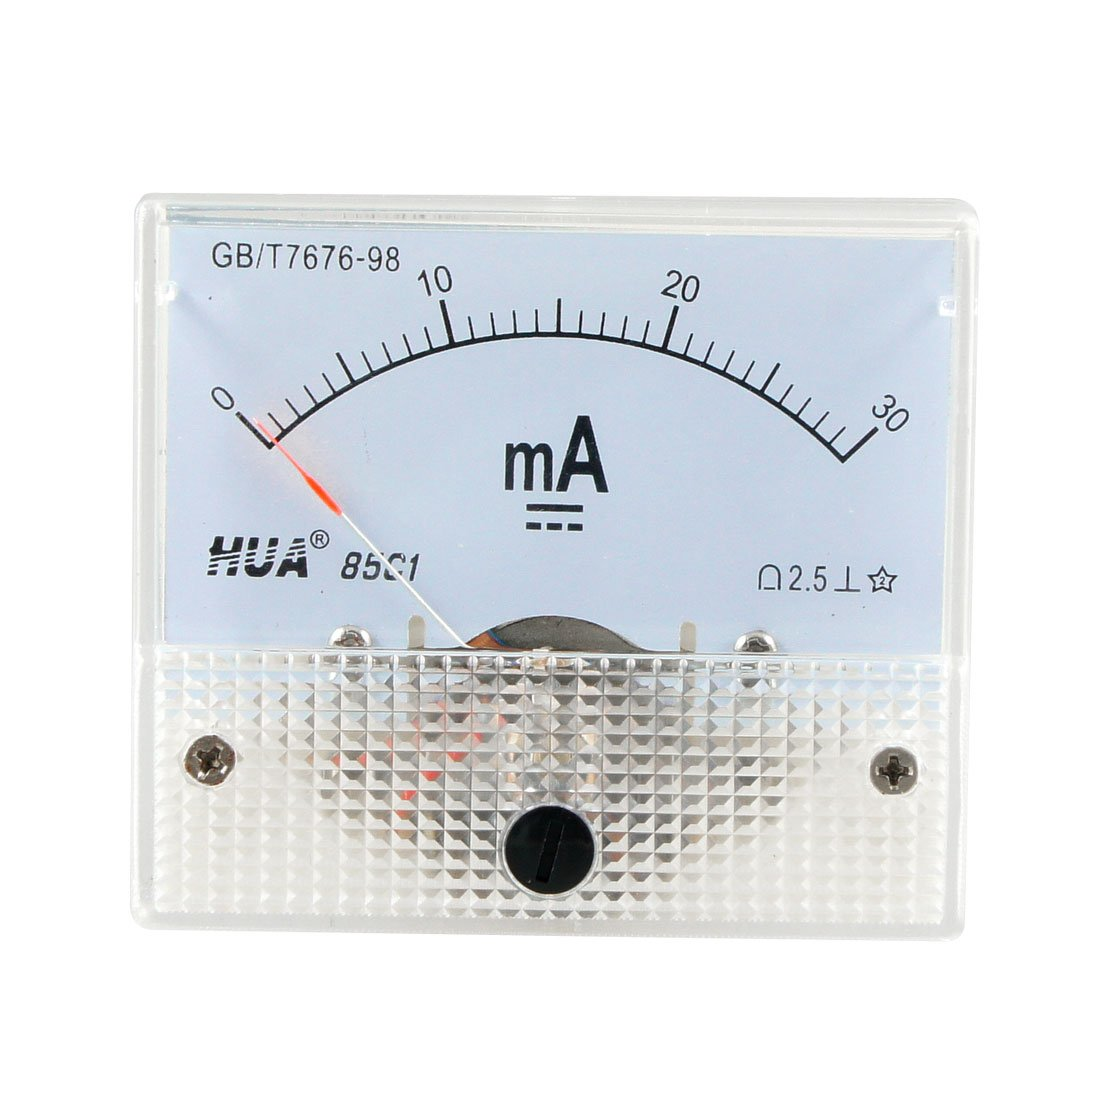 DC 0-30mA Analog Current Panel Meter Ammeter 85C1 30MA Off White Sourcingmap a12102300ux0746